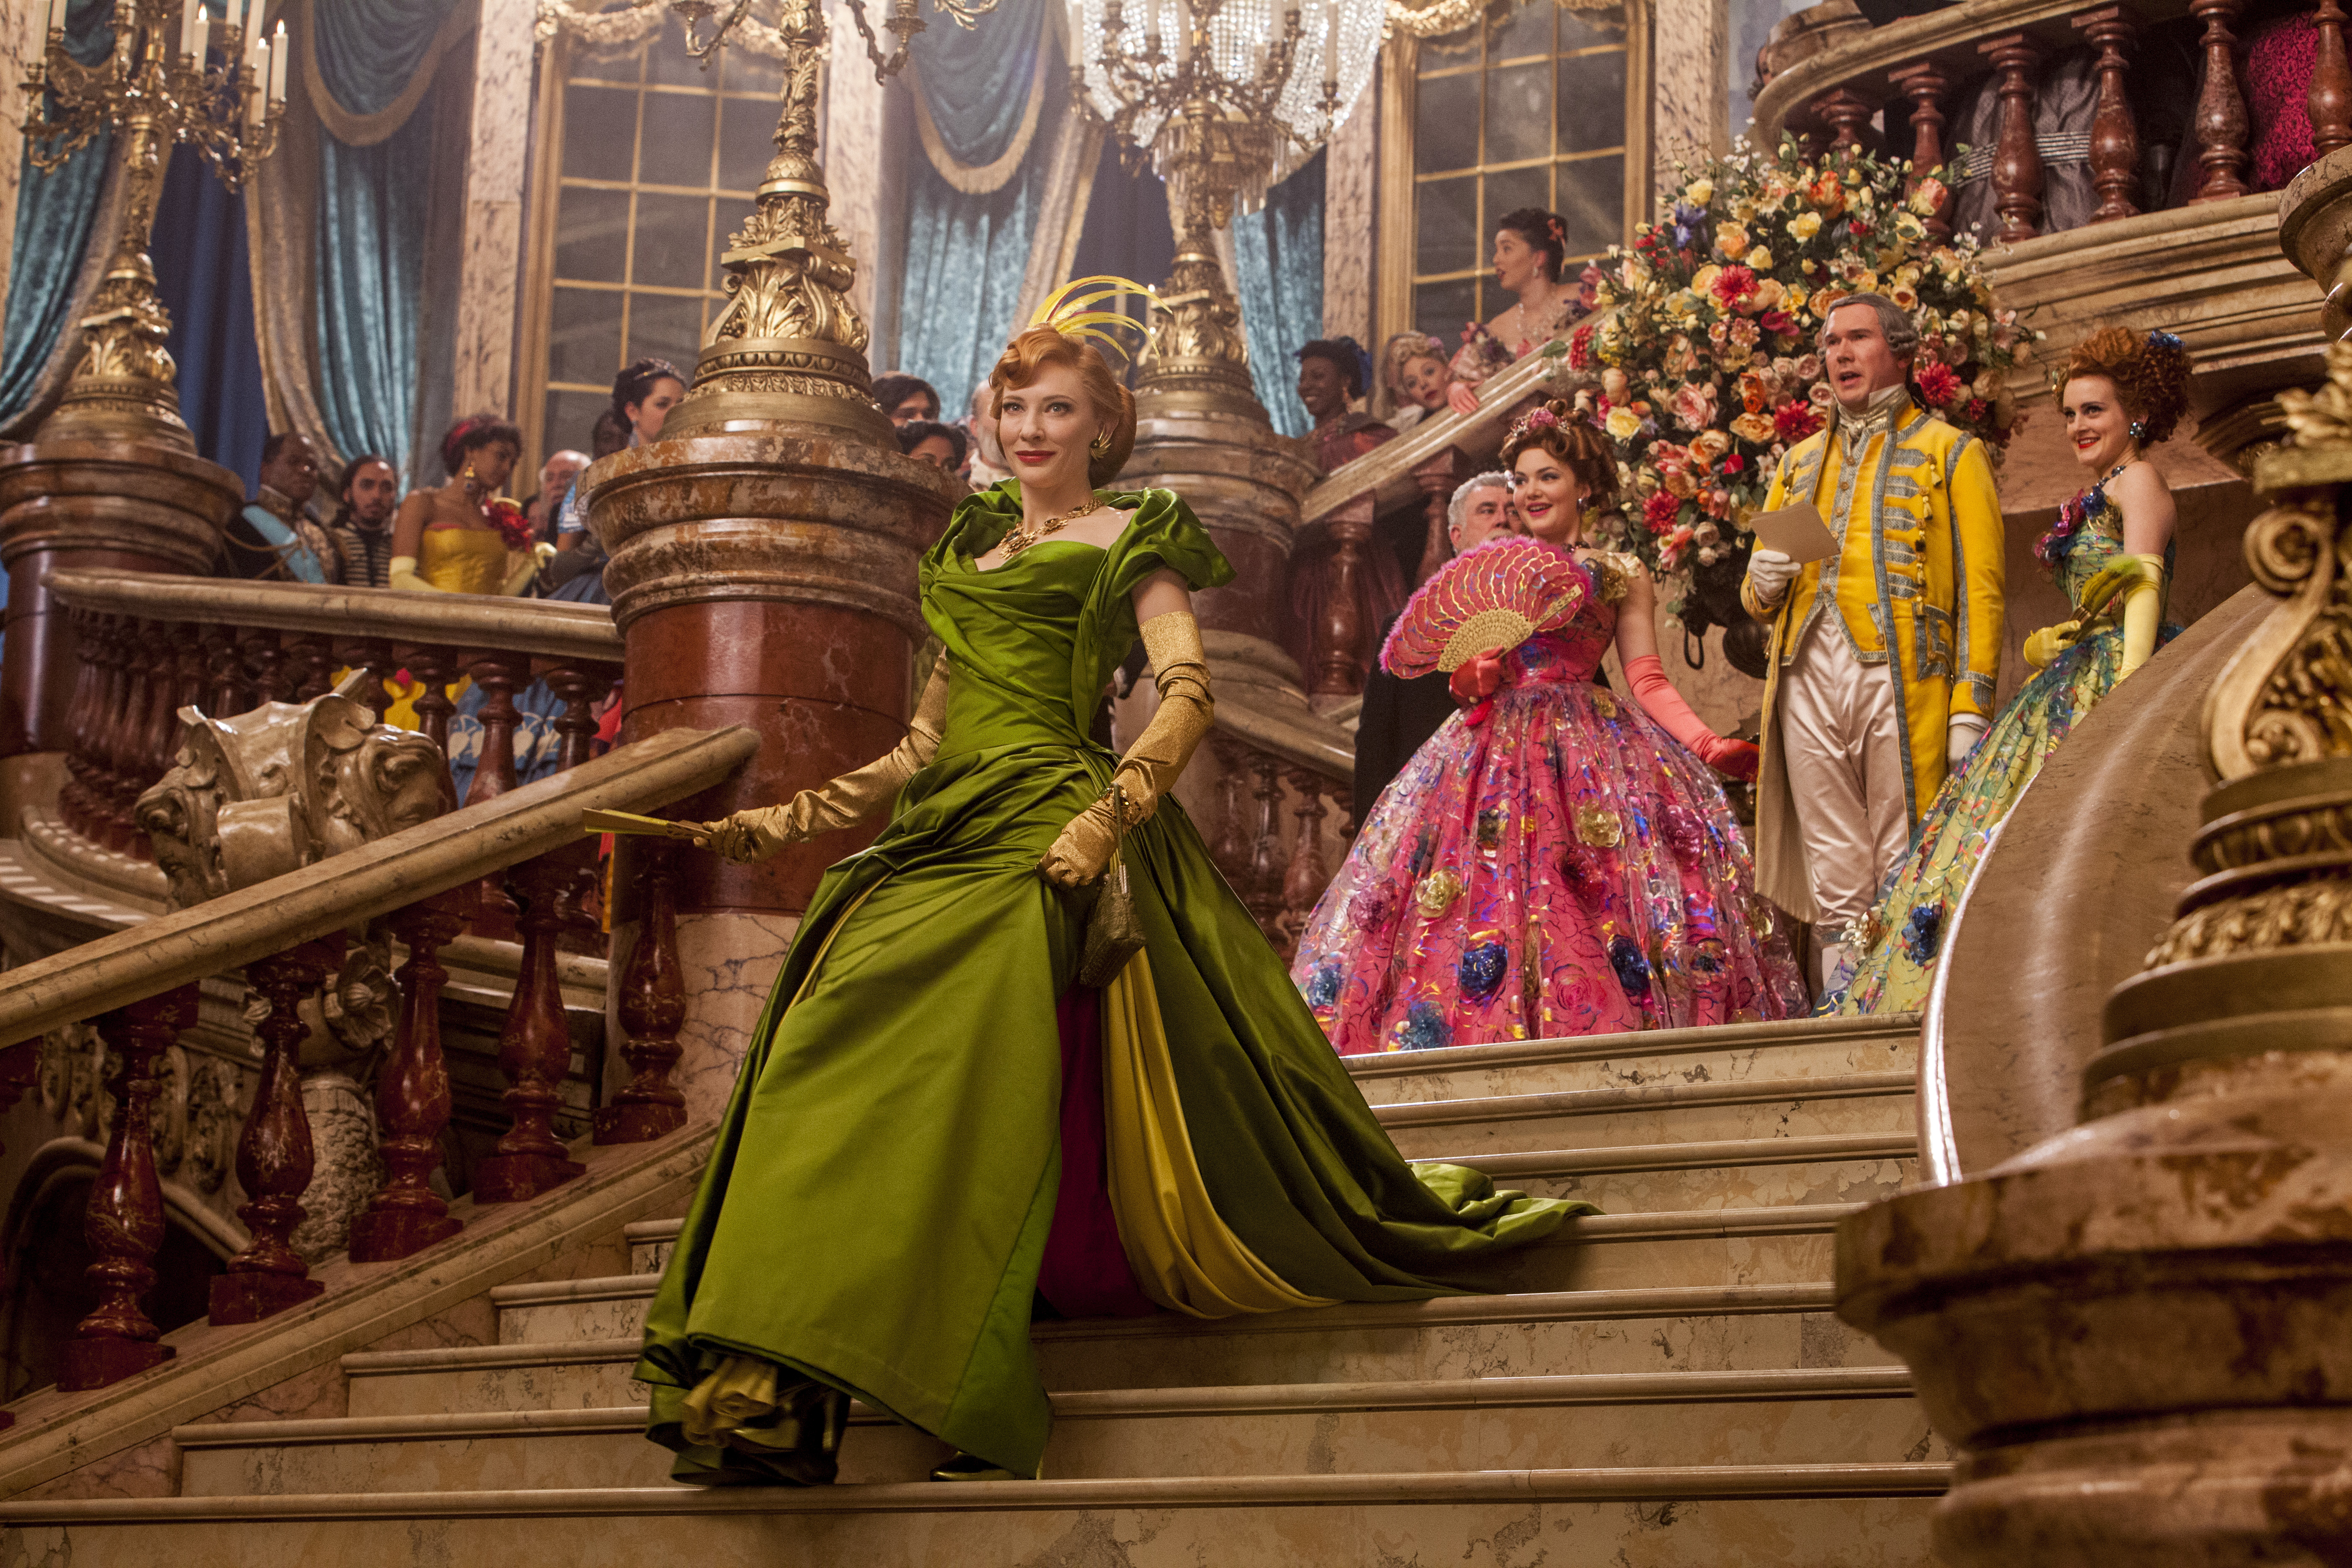 Costume design defined the characters in Cinderella